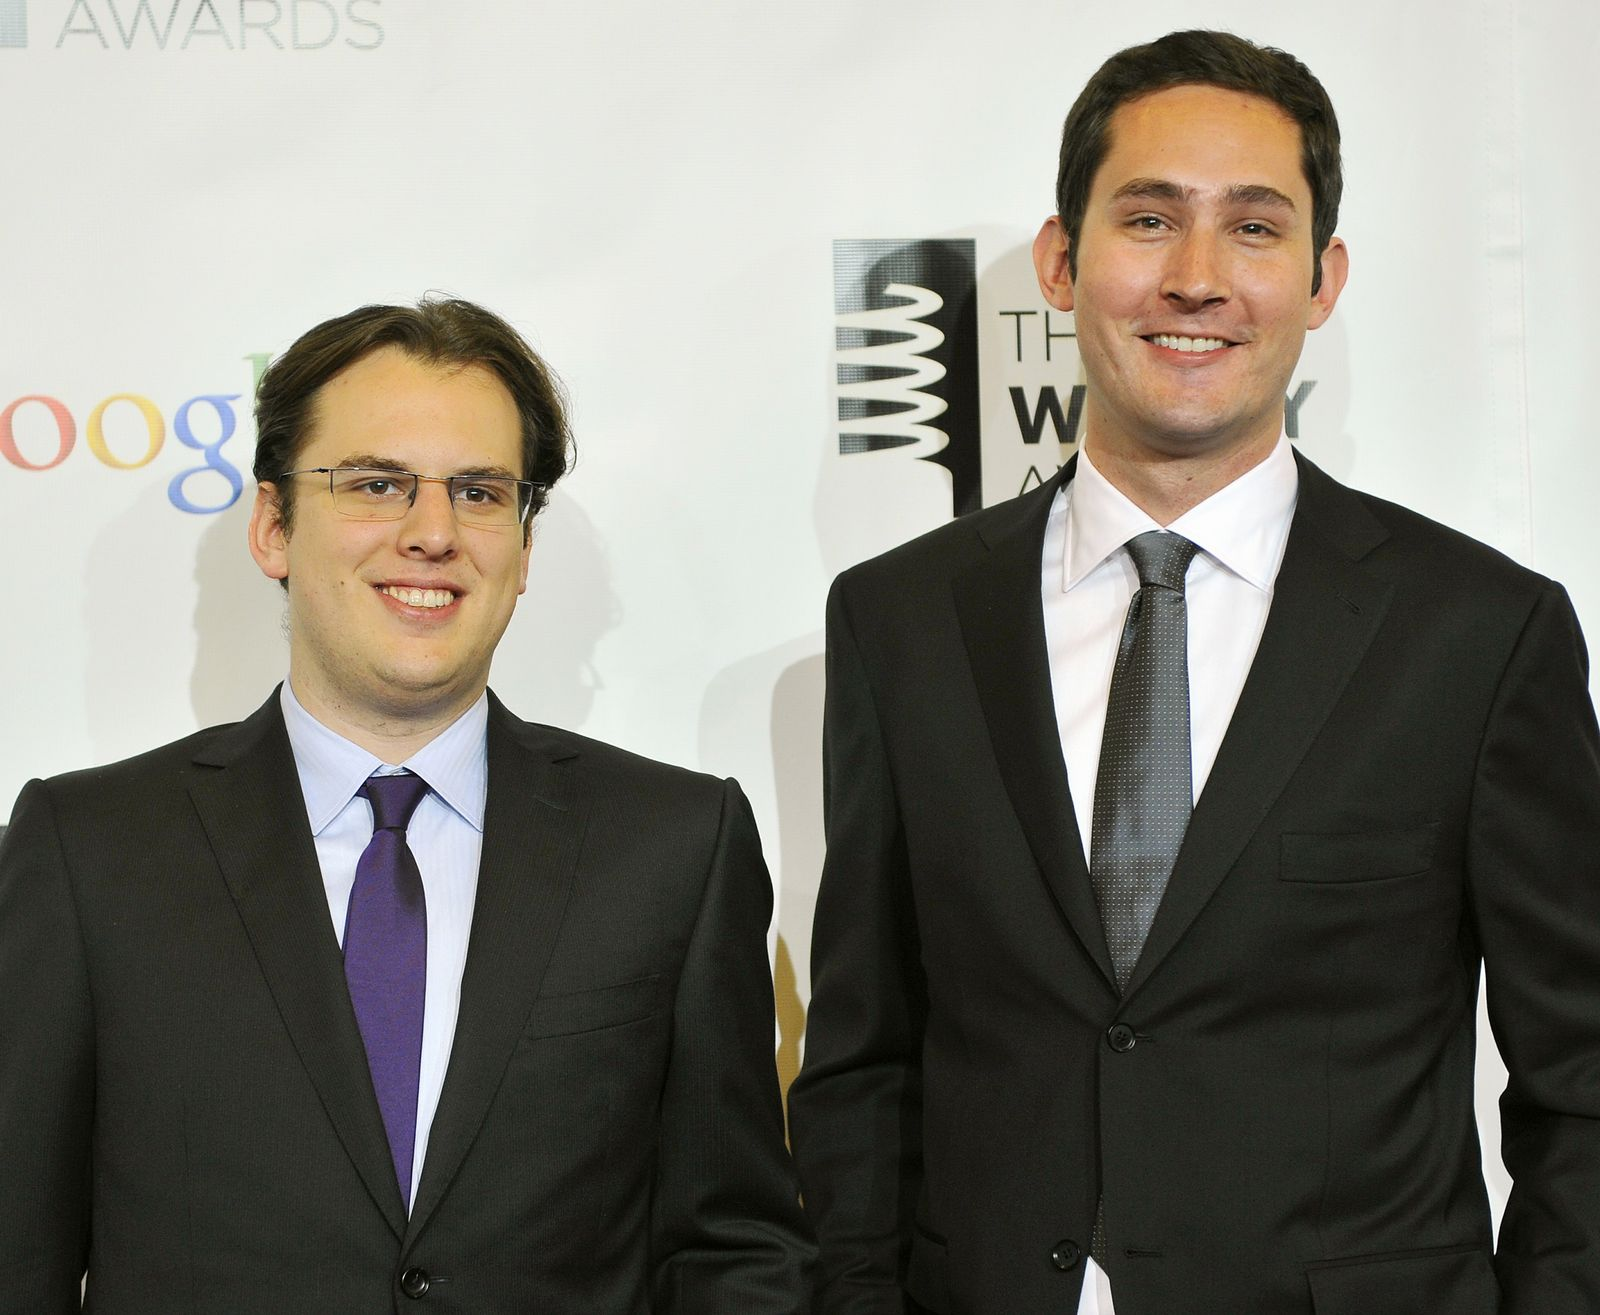 Mike Krieger / Kevin Systrom